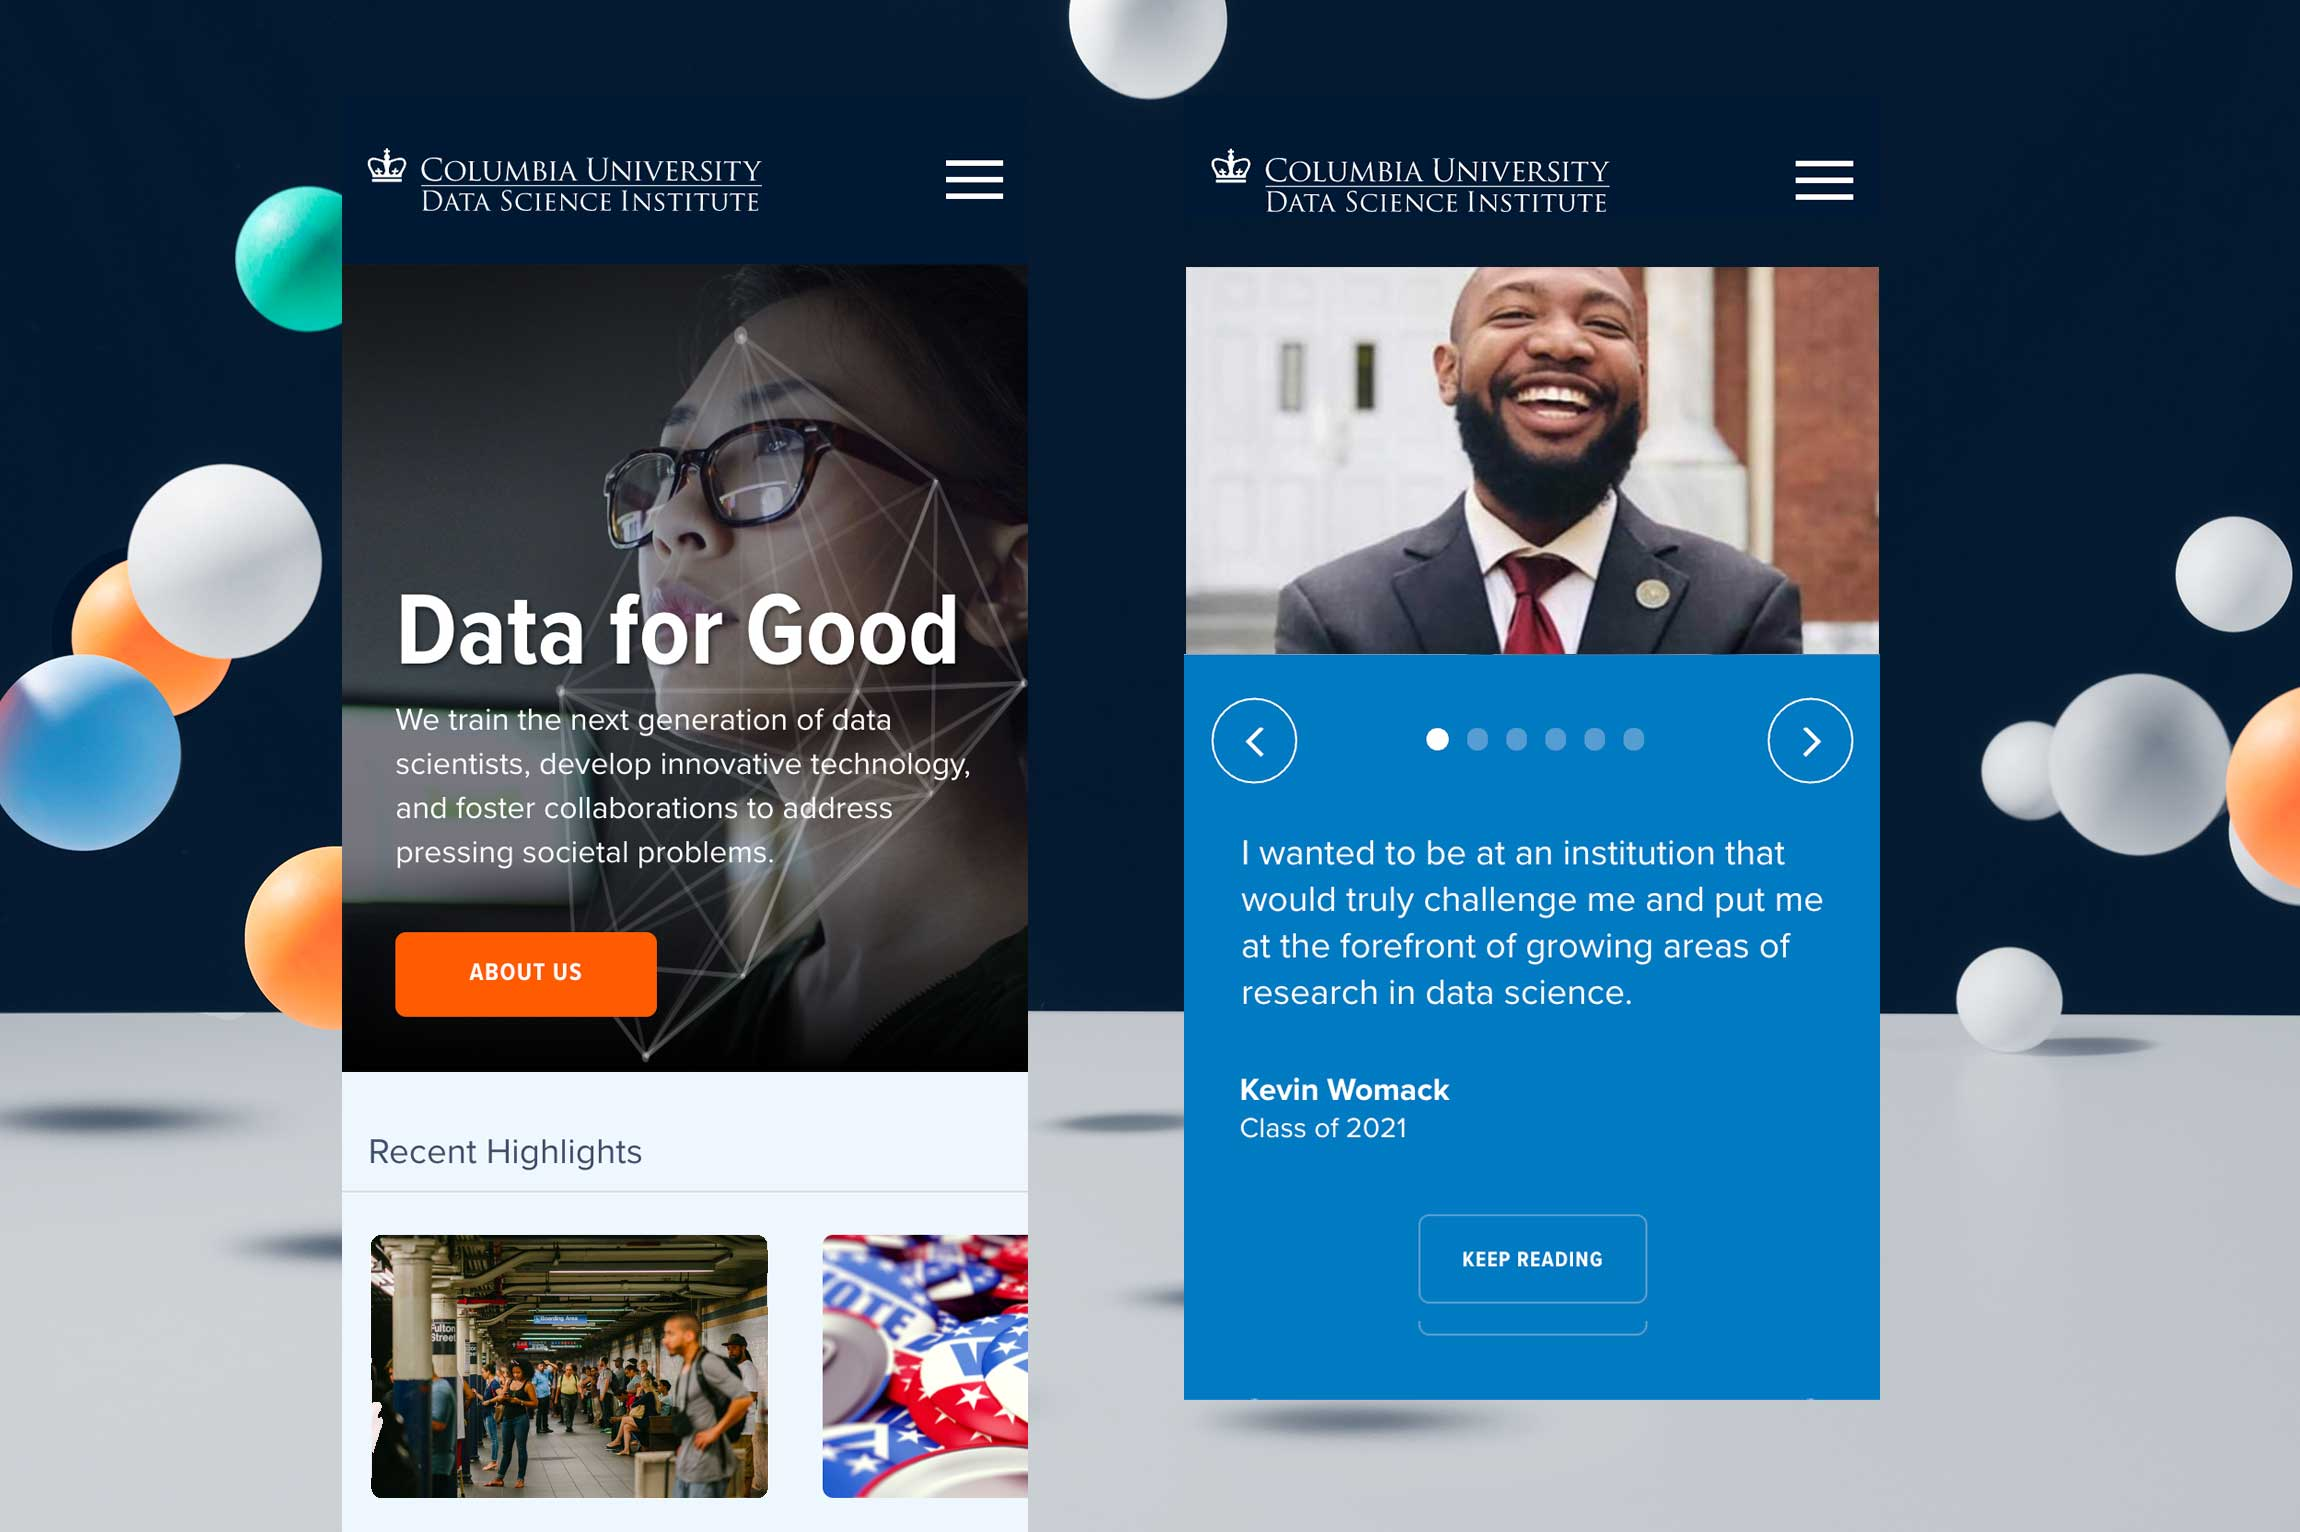 Columbia-Data-Science-Institute-website-design-1